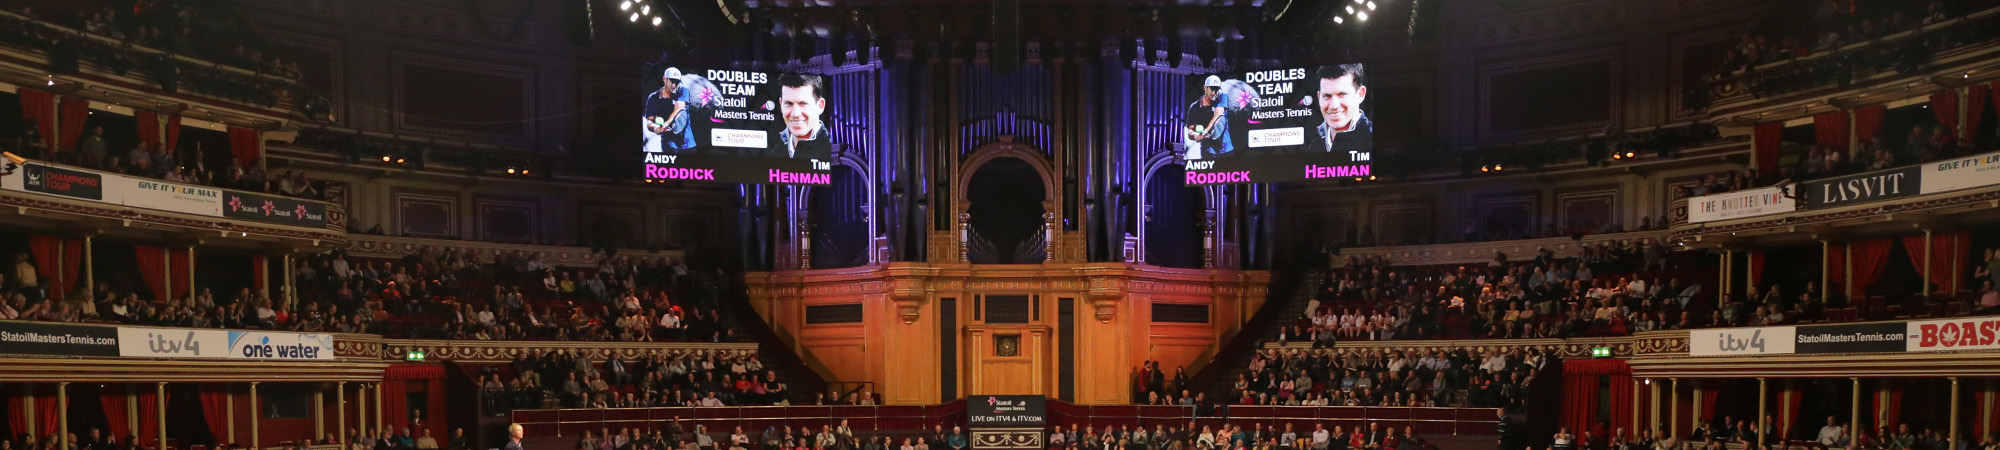 The scoreboards on the Champions Tour at the Royal Albert Hall